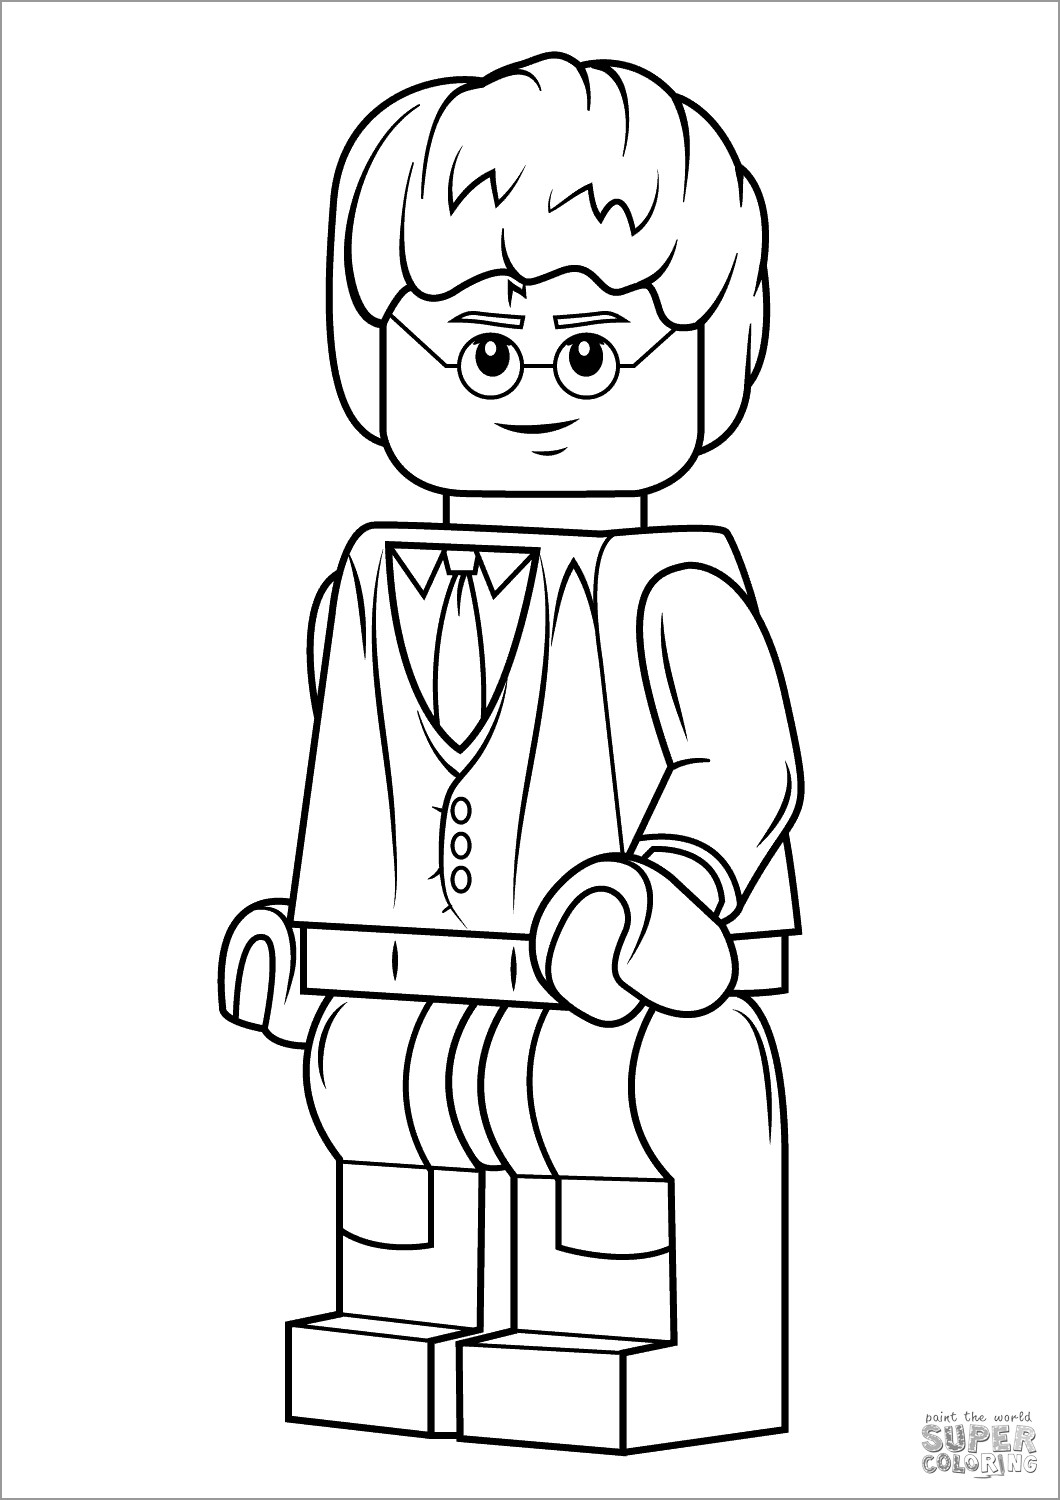 Lego Harry Potter Coloring Page - ColoringBay